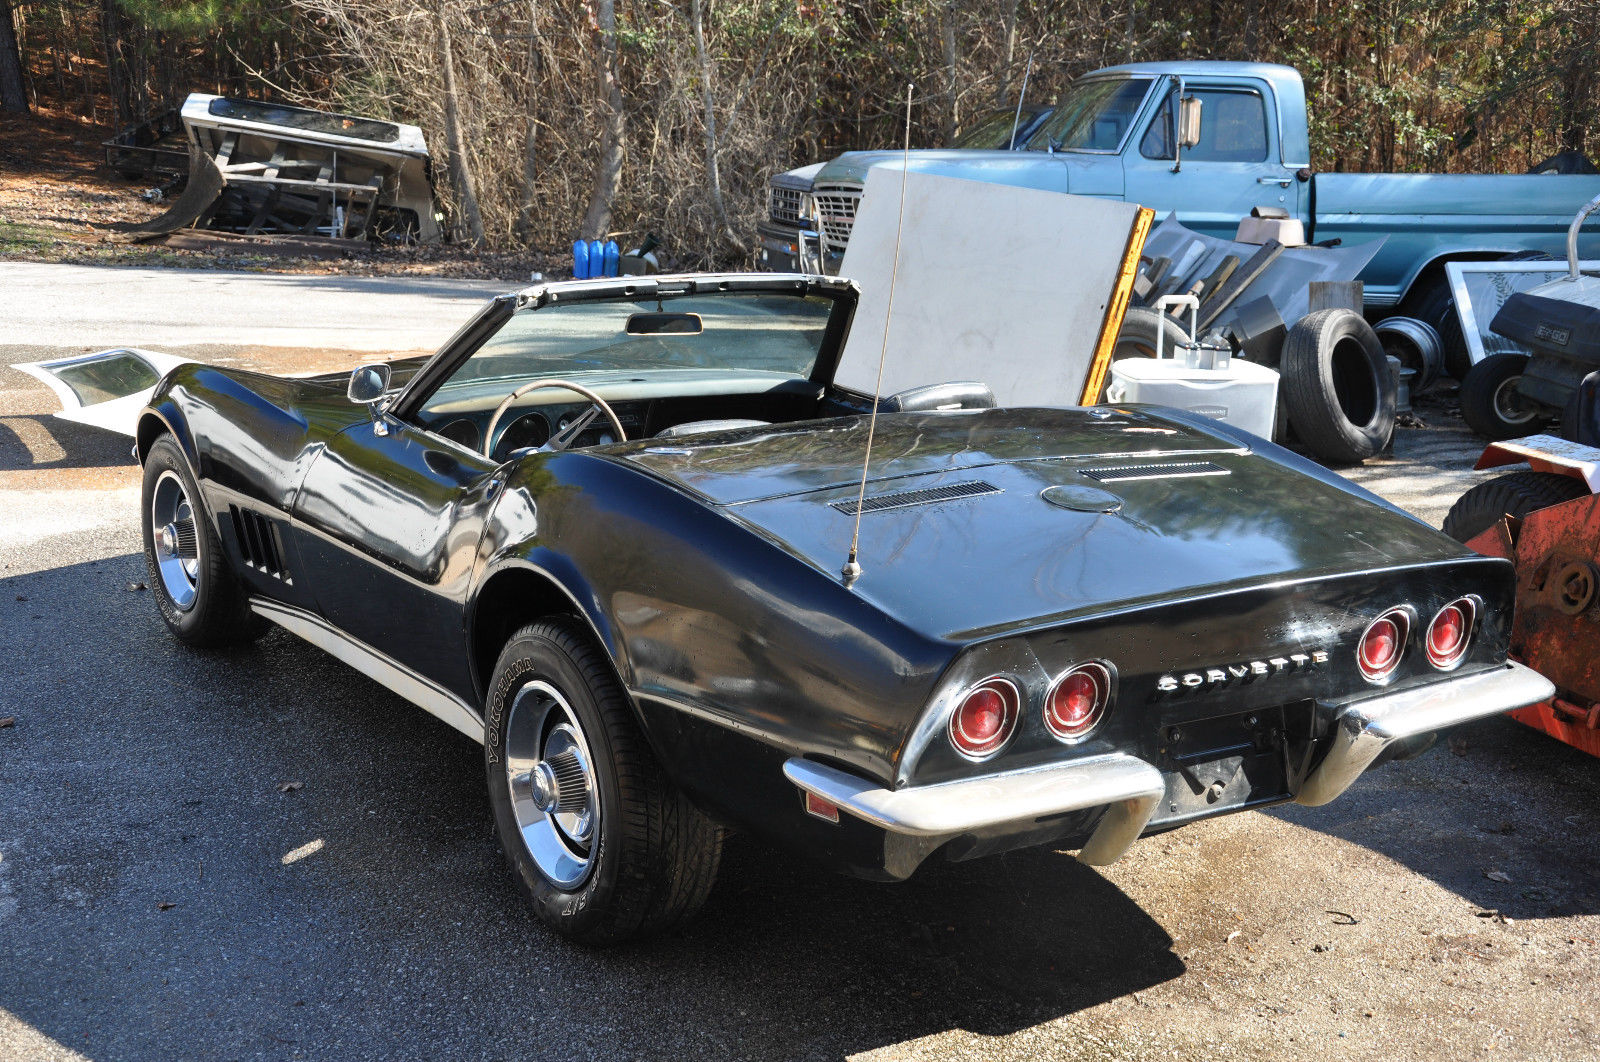 1968 corvette convertible 327 4 speed 1969 1970 1971 project no rust chevrolet. Black Bedroom Furniture Sets. Home Design Ideas